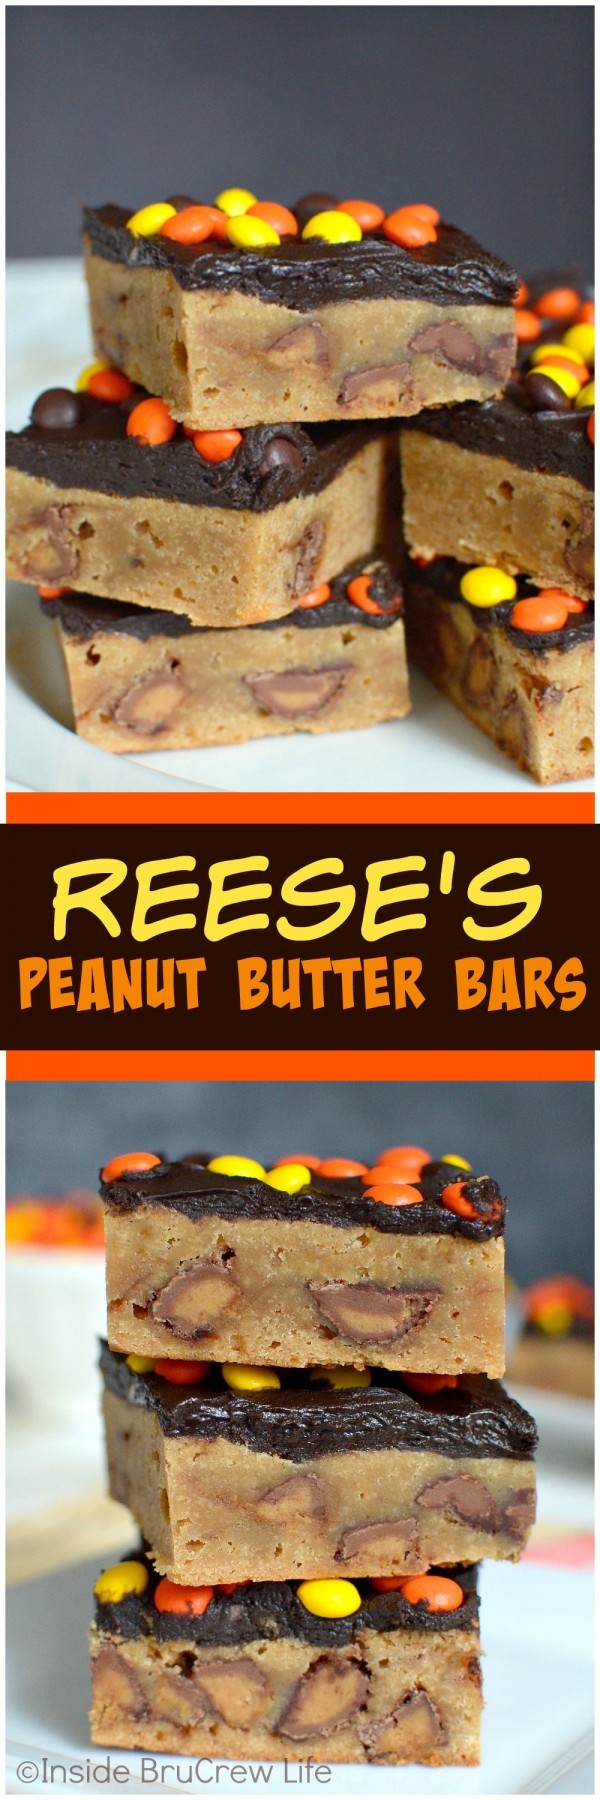 Get the recipe ♥ Reese's Peanut Butter Bars #besttoeat @recipes_to_go